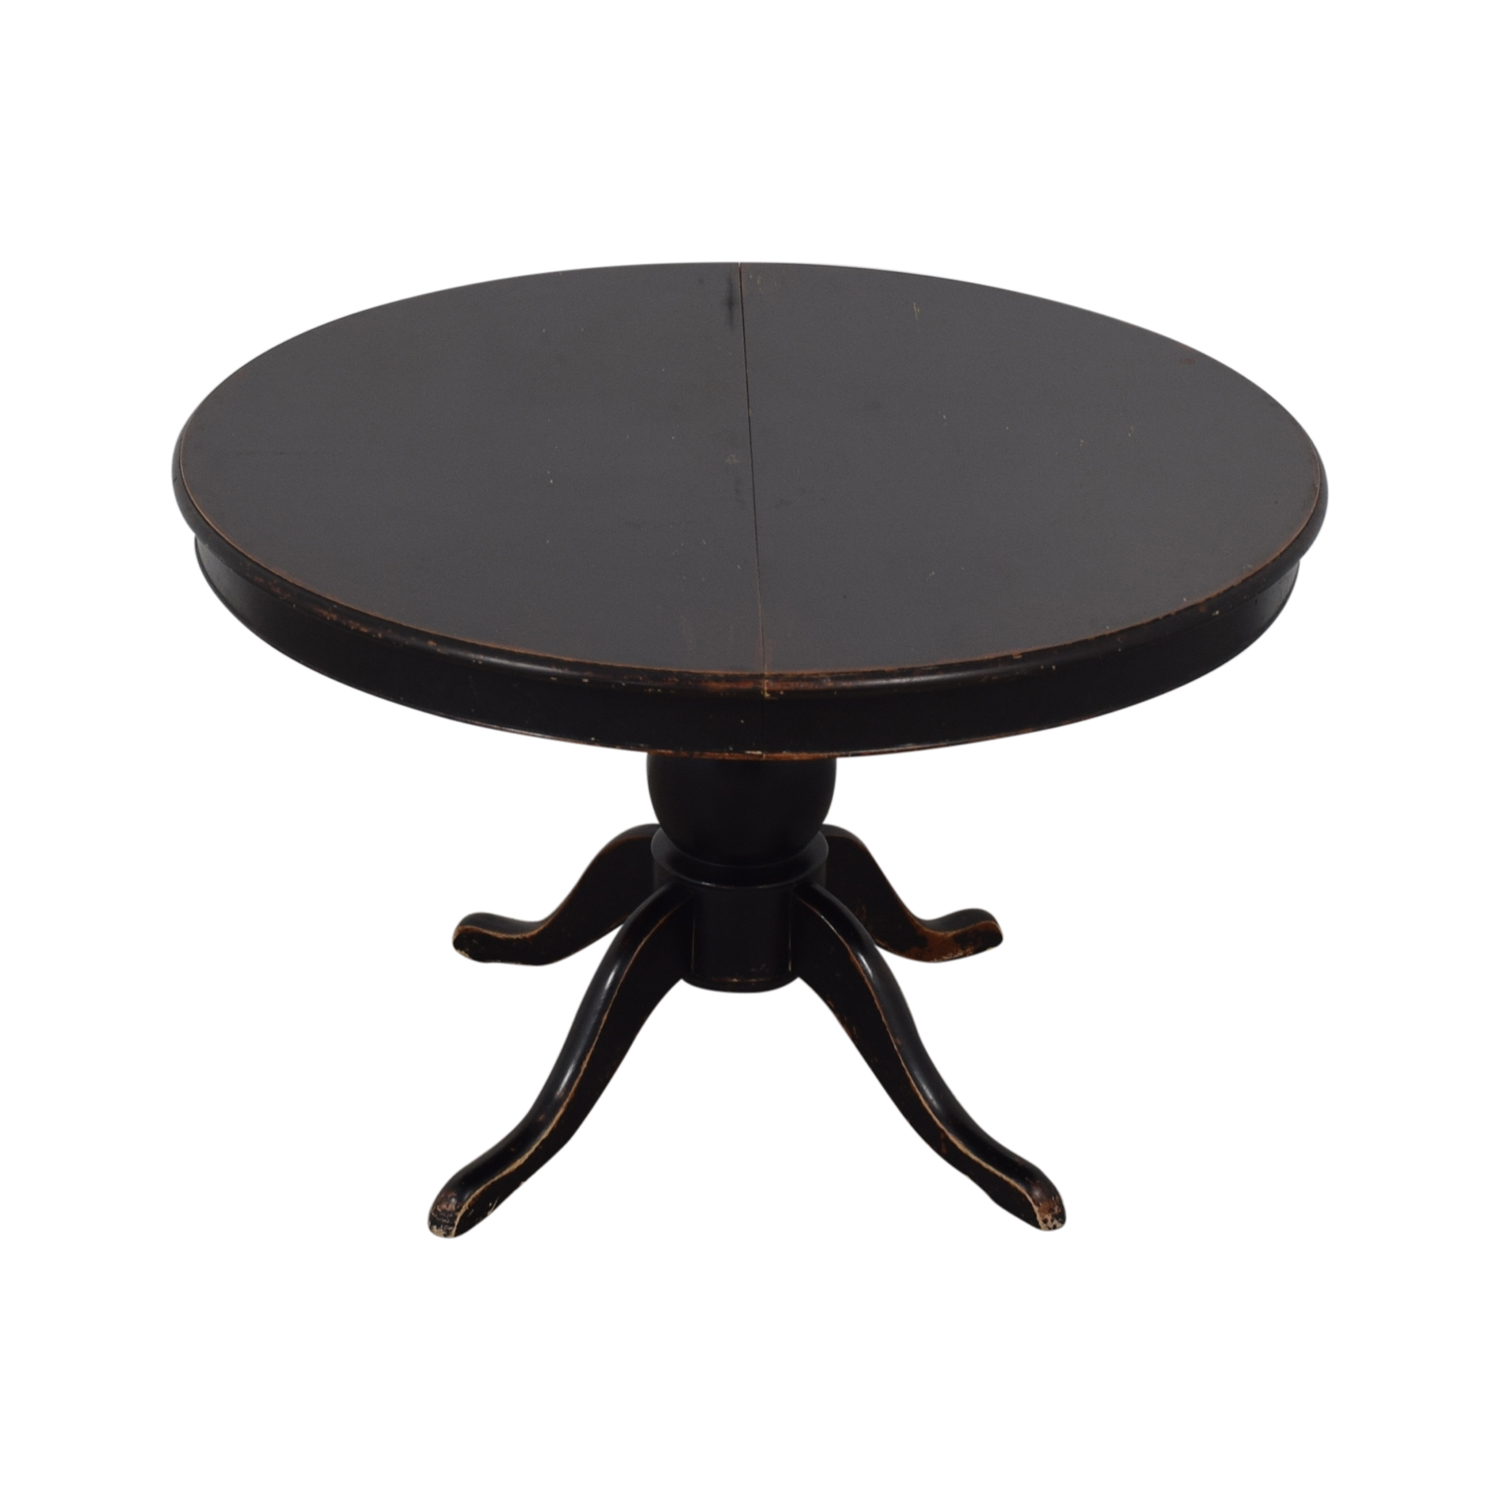 buy Crate & Barrel Avalon Round Extendable Dining Table Crate & Barrel